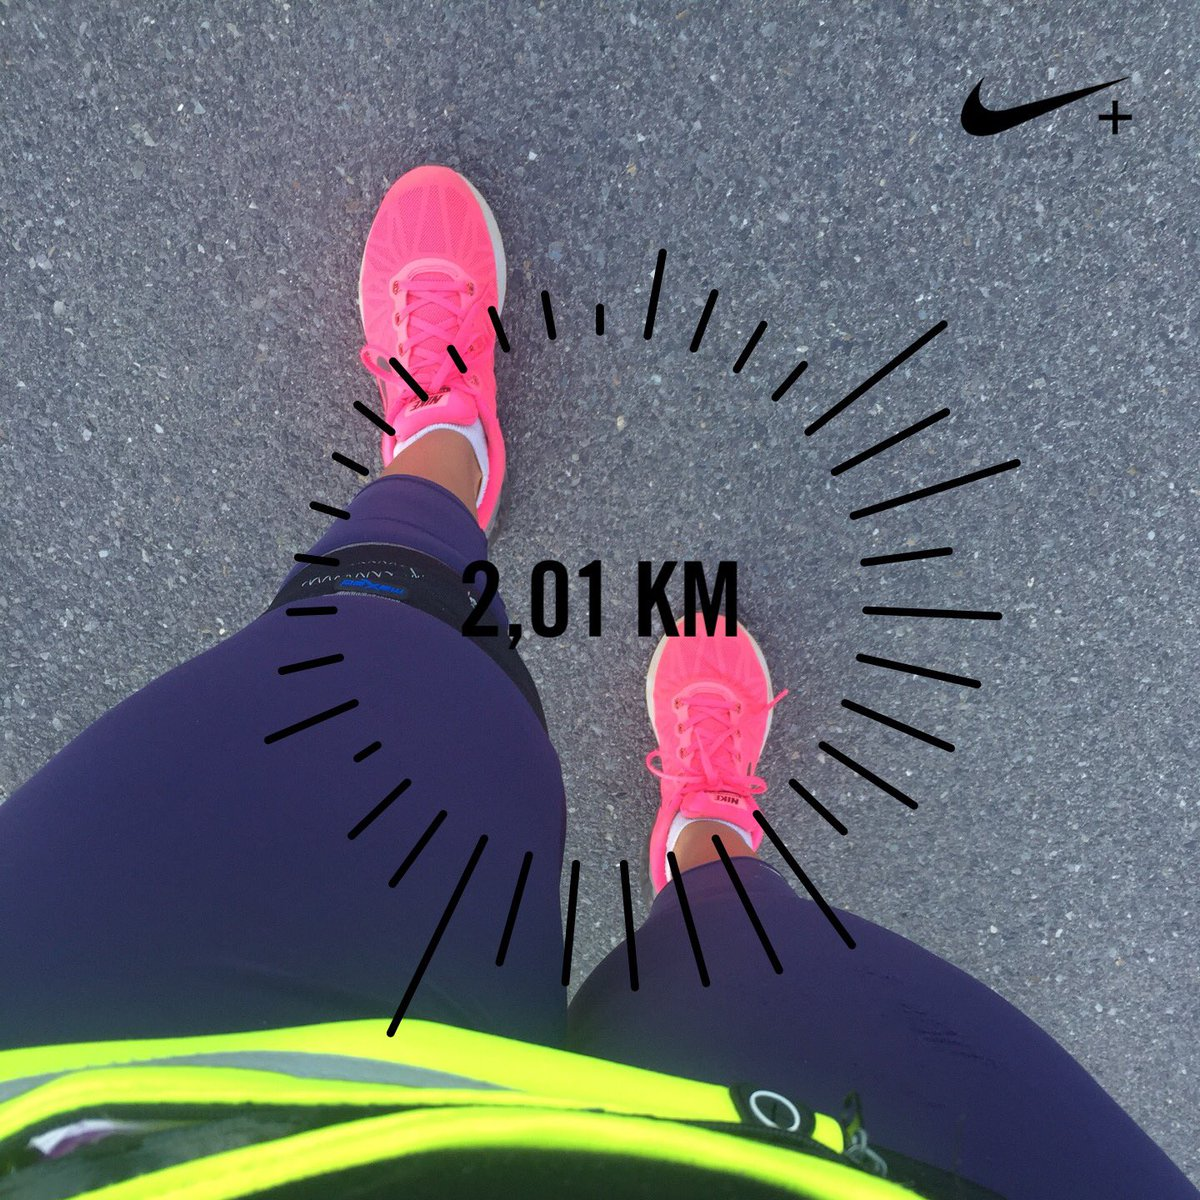 Running for gratitude was a thing back then, now we limp for gratitude because we are still grateful for the gift of life #DiaryOfAnInjuredRunner #RunningWithTumiSole #FetchYourBody2020<br>http://pic.twitter.com/qOWlnWXc1Z